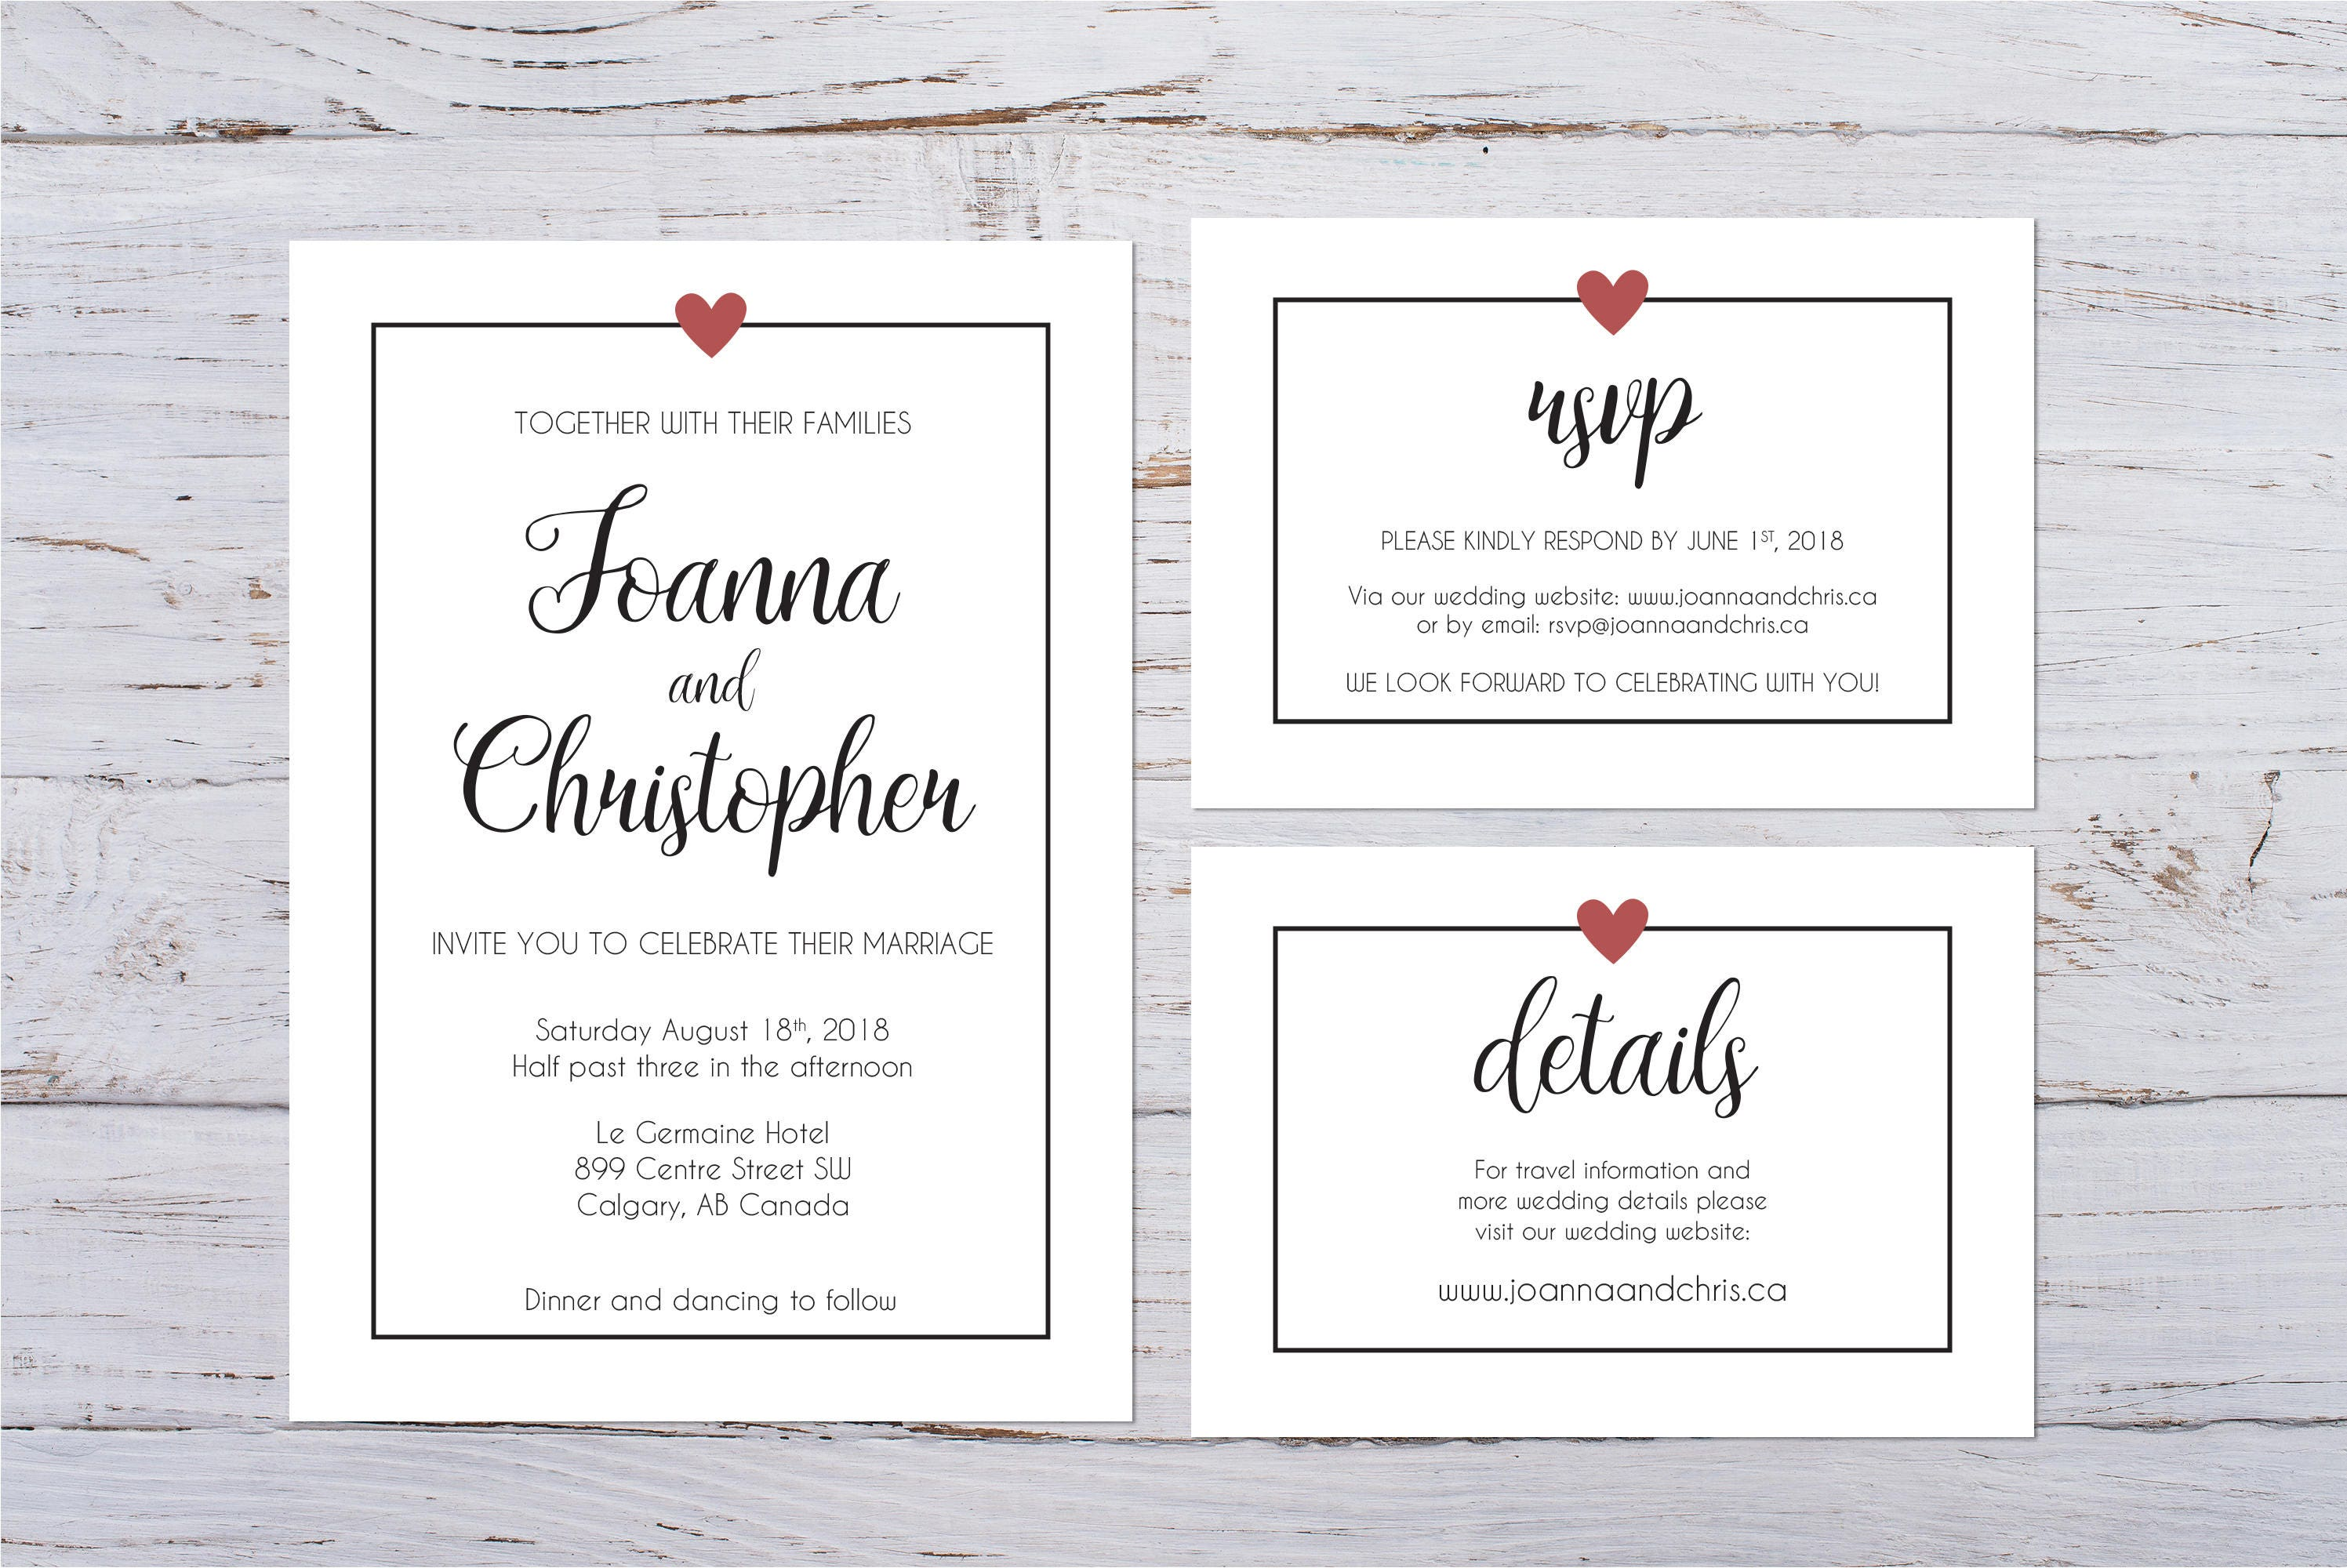 Heart Images For Wedding Invitations: Printable Minimalist Heart Wedding Invitation Custom Wedding